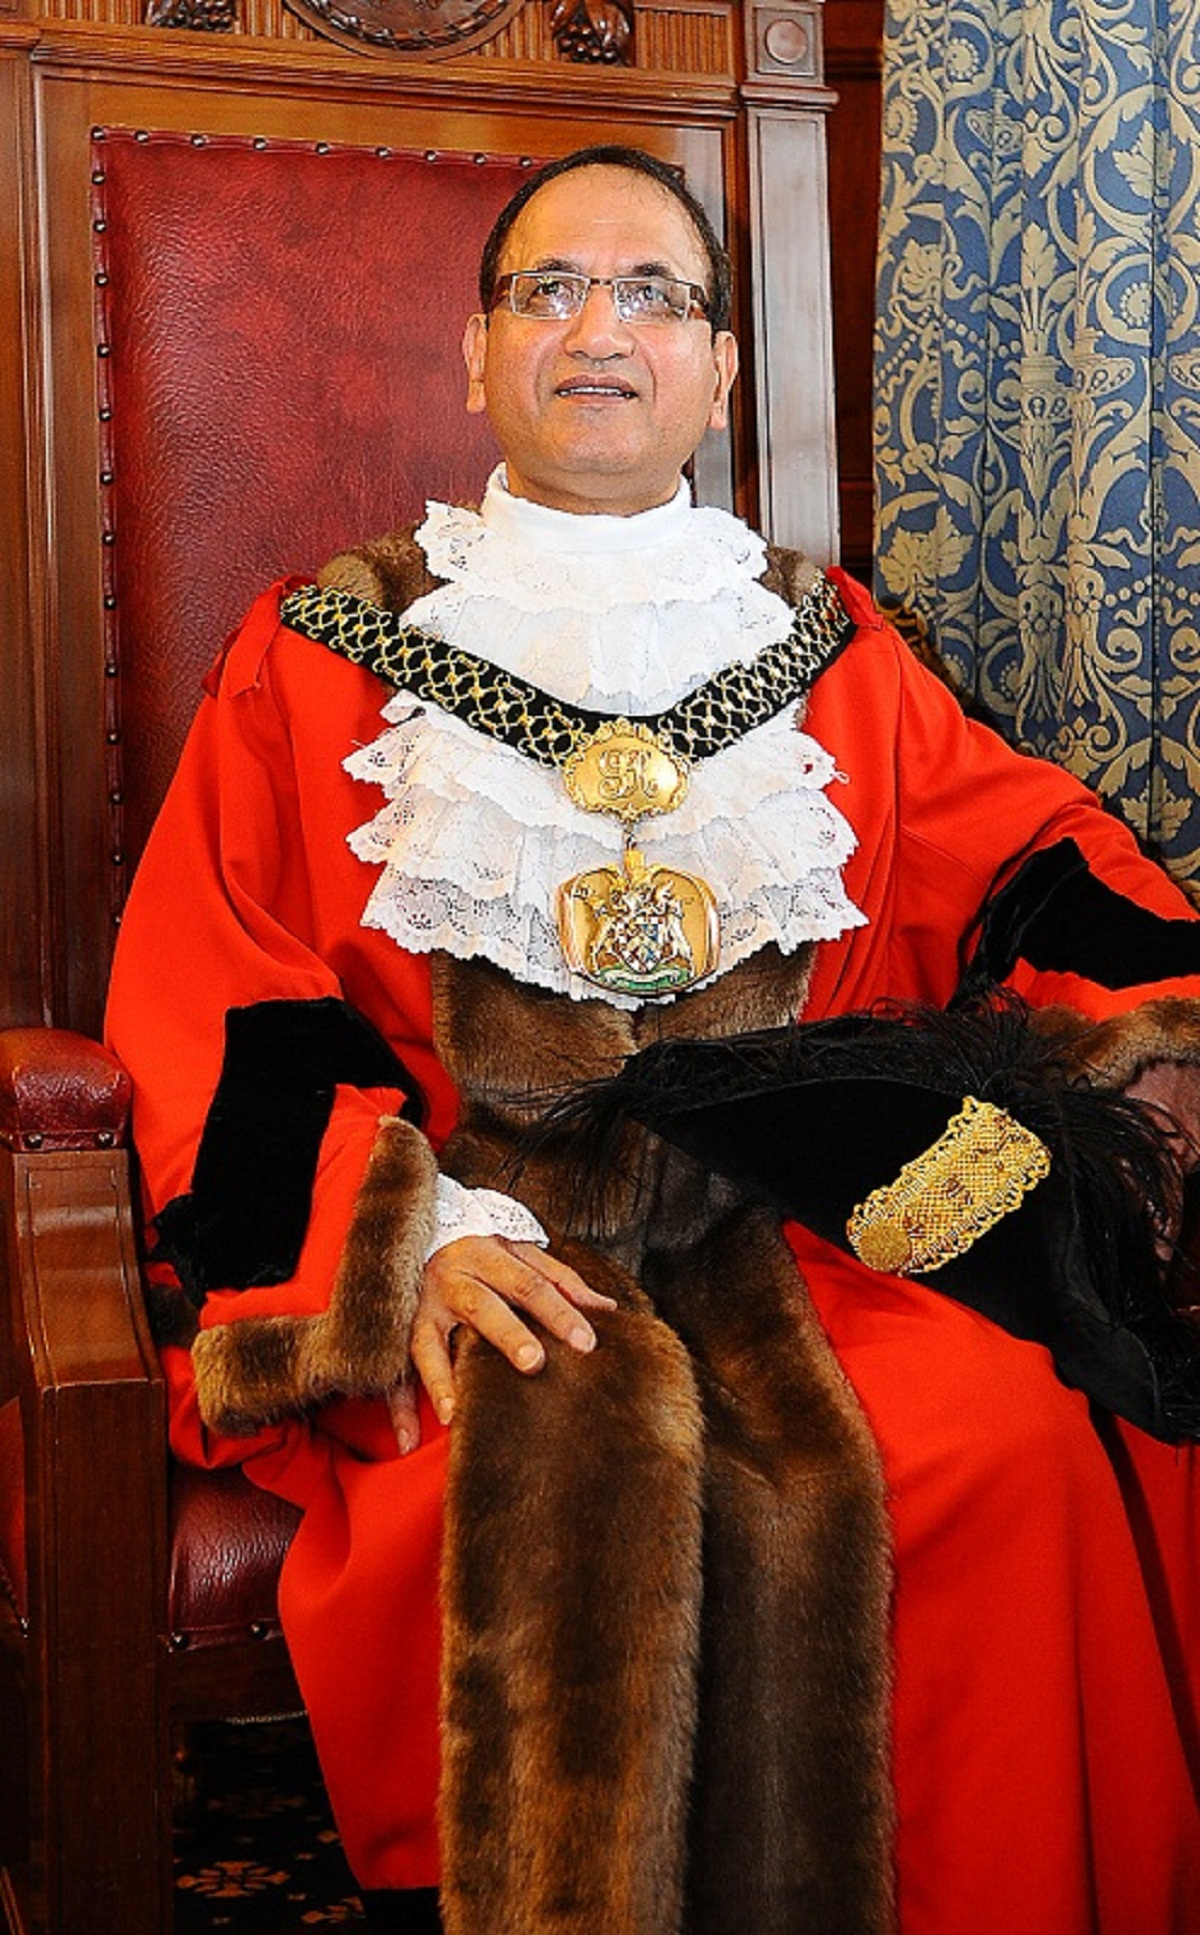 The Lord Mayor of Bradford, Councillor Khadim Hus